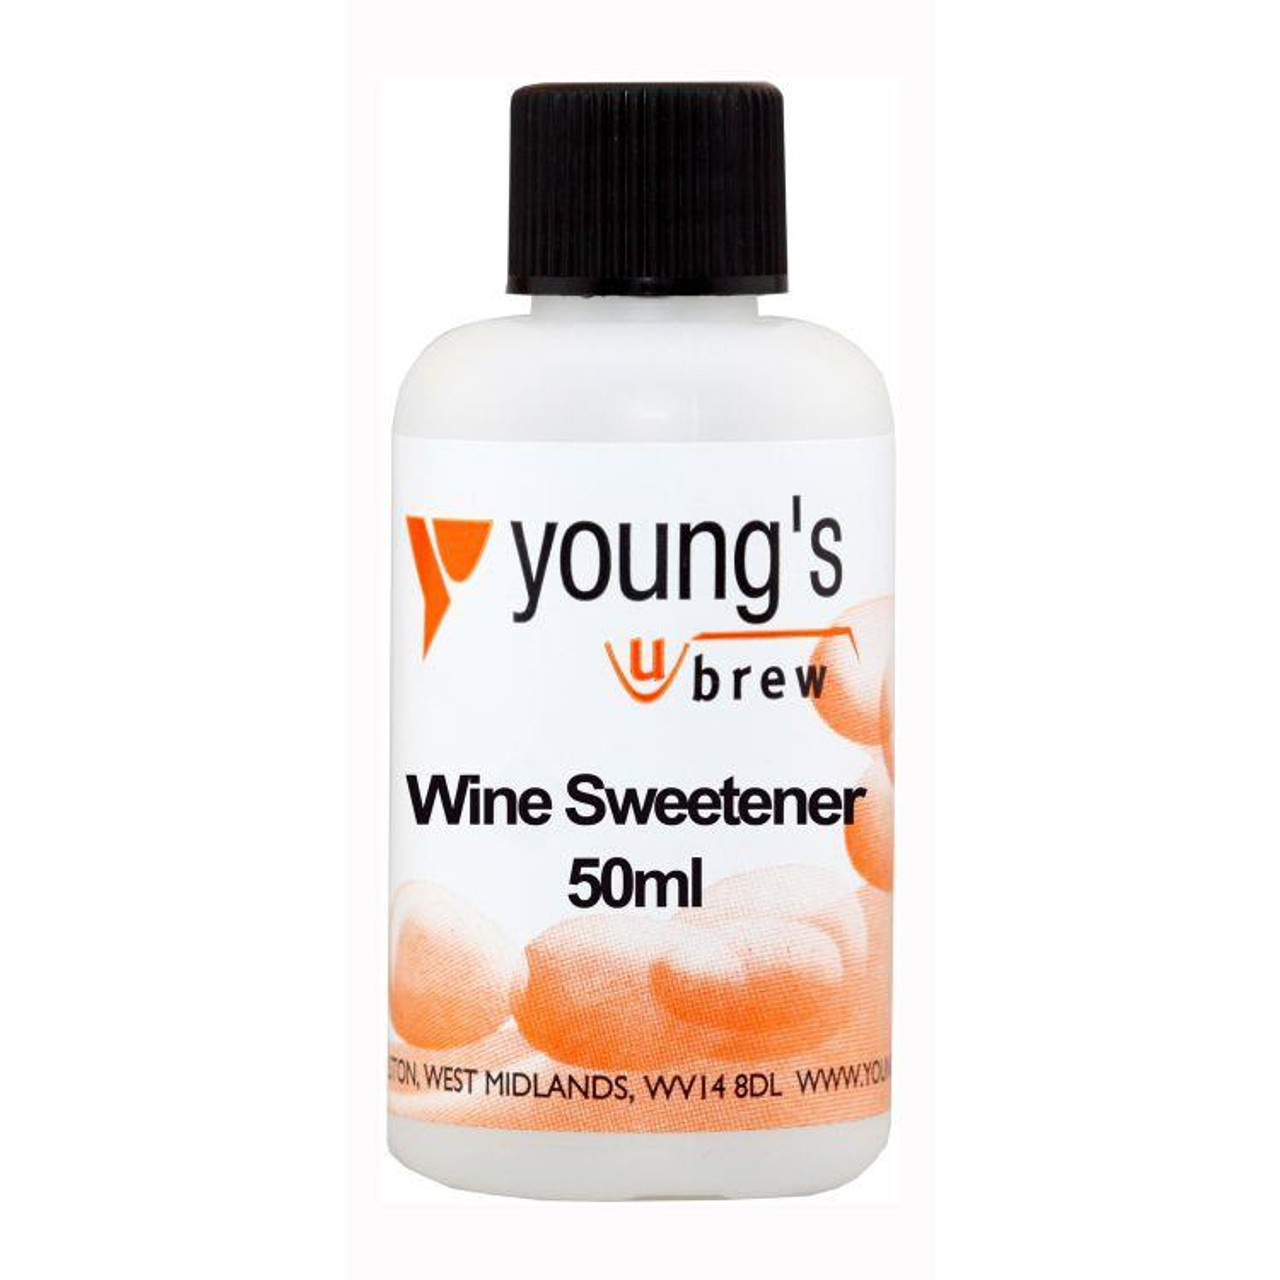 Youngs 50ml Wine Sweetener